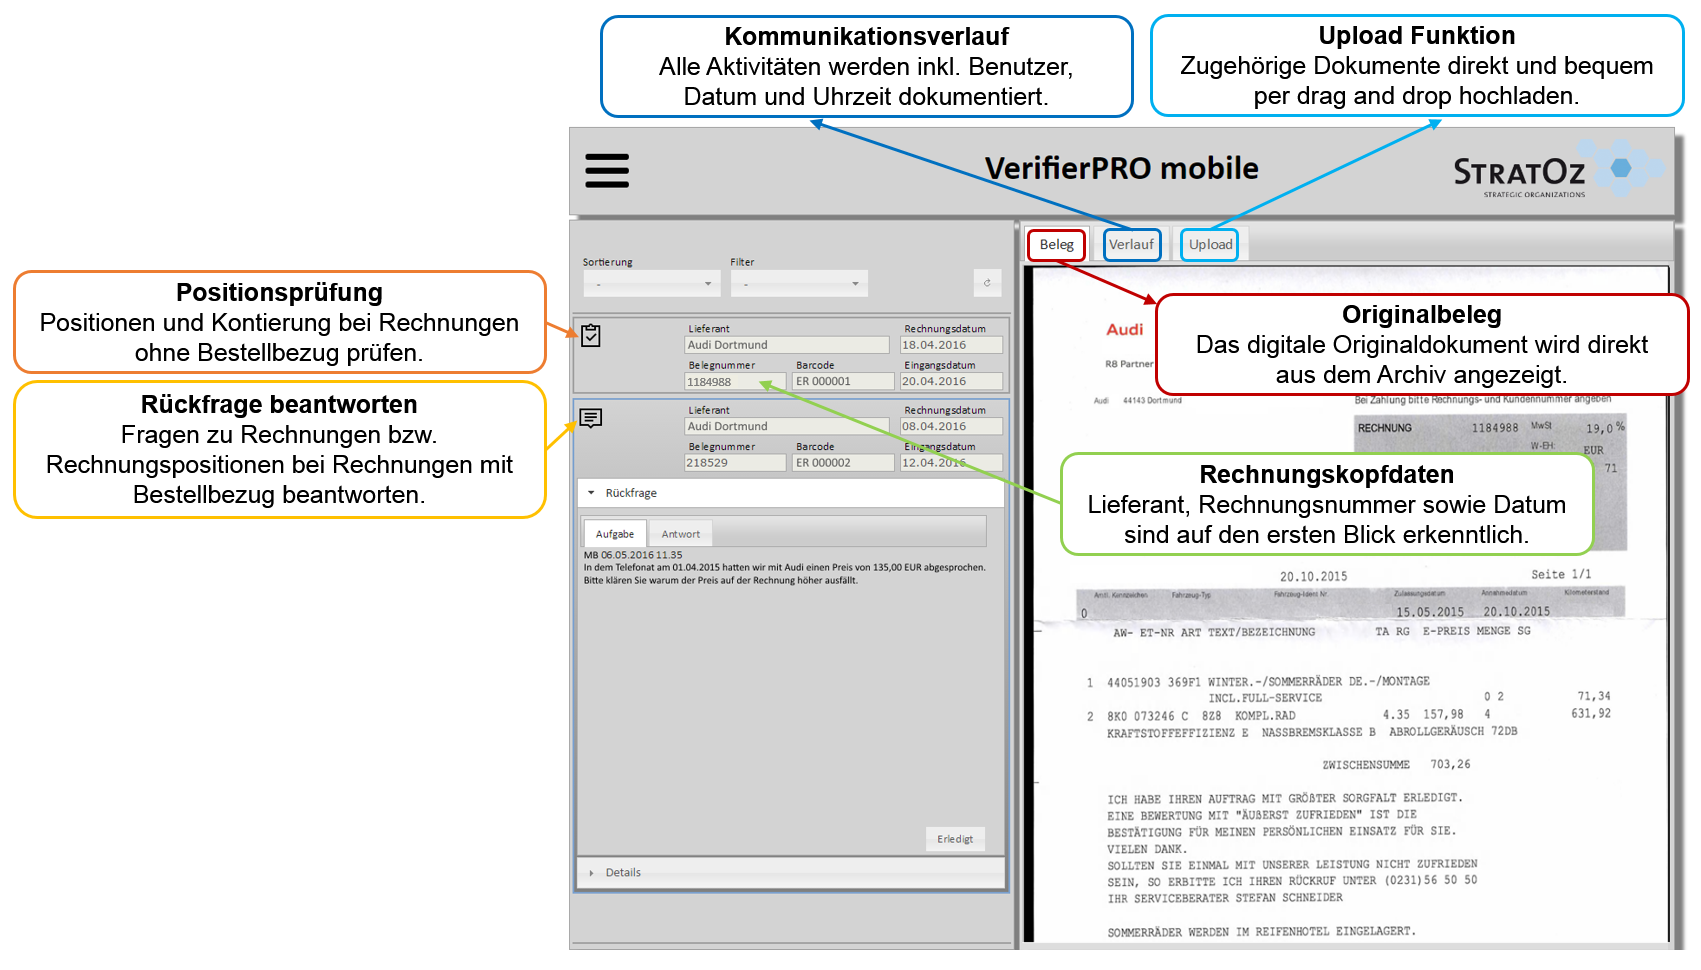 StratOz VerifierPRO mobile 2.0 Digitale Kommunikation Digitale Transformation